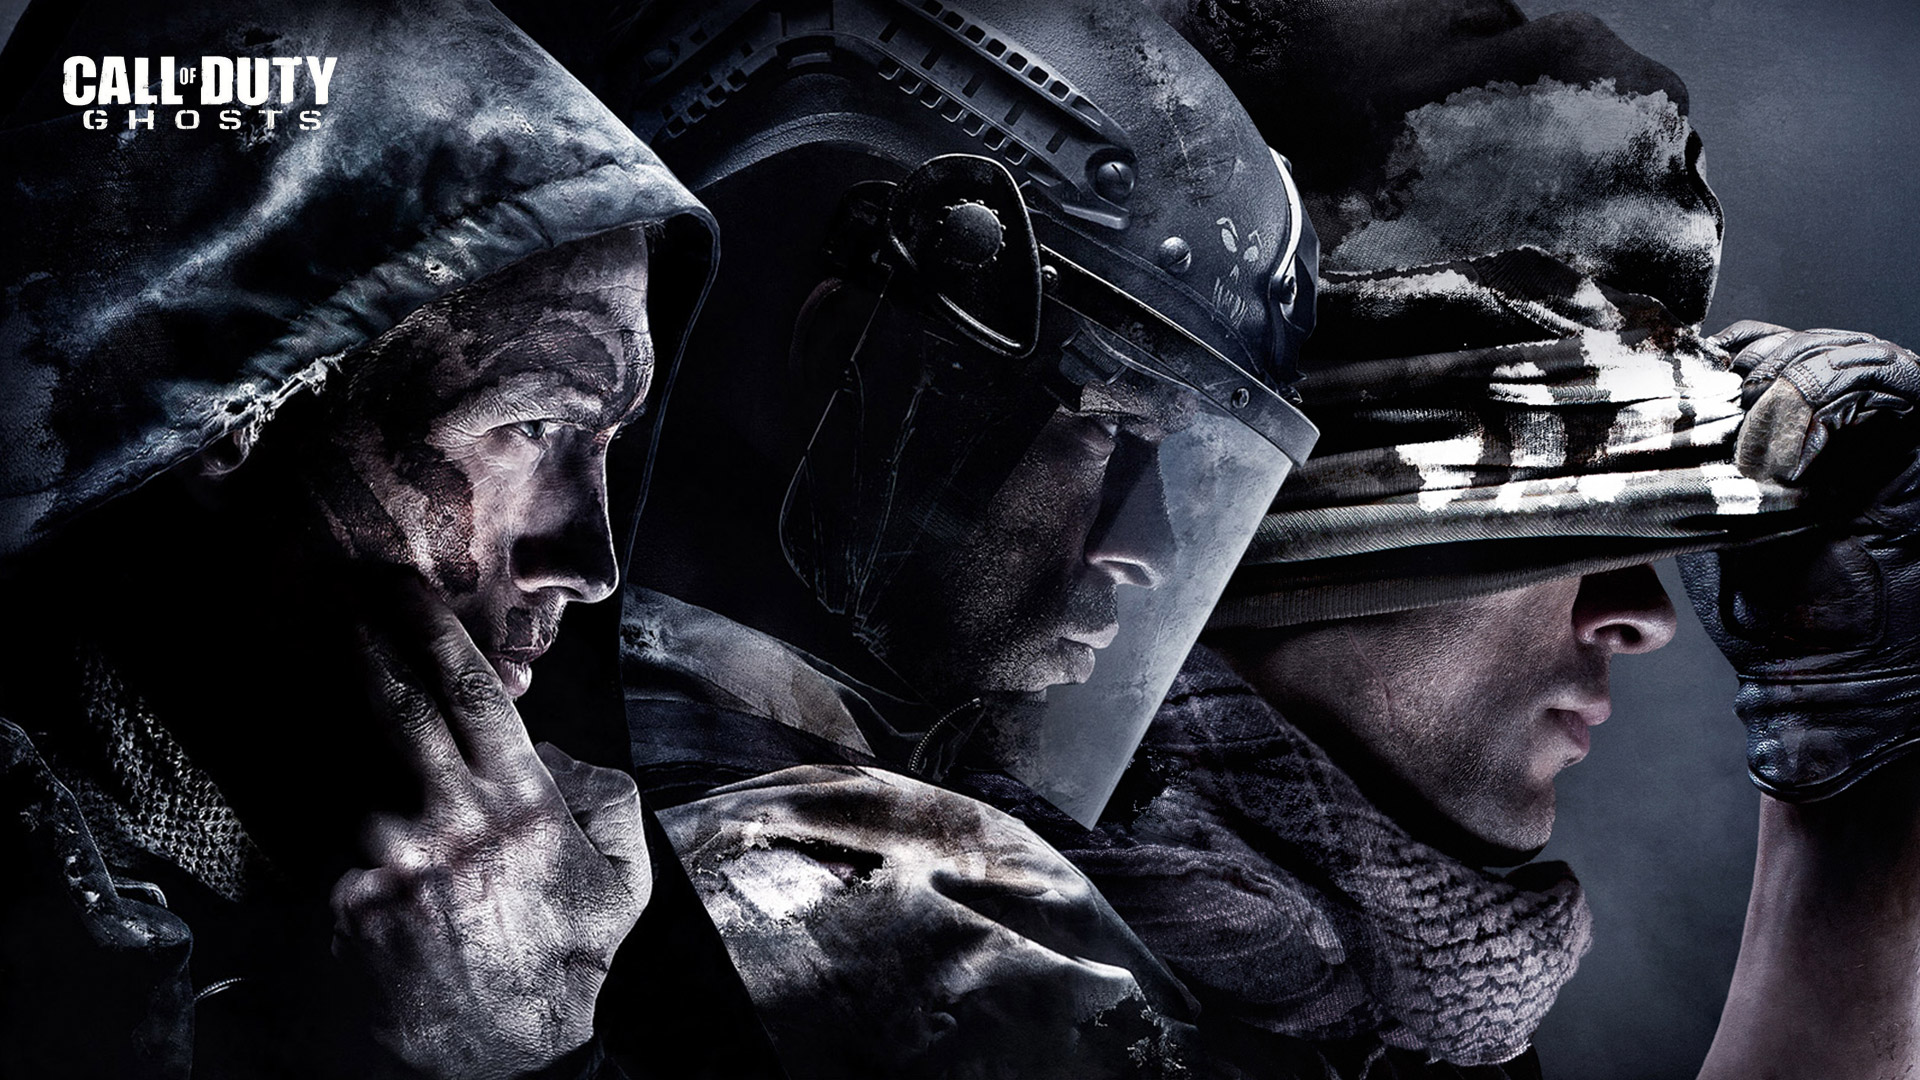 Call of duty ghosts wallpaper 11 wallpapersbq download wallpaper voltagebd Choice Image